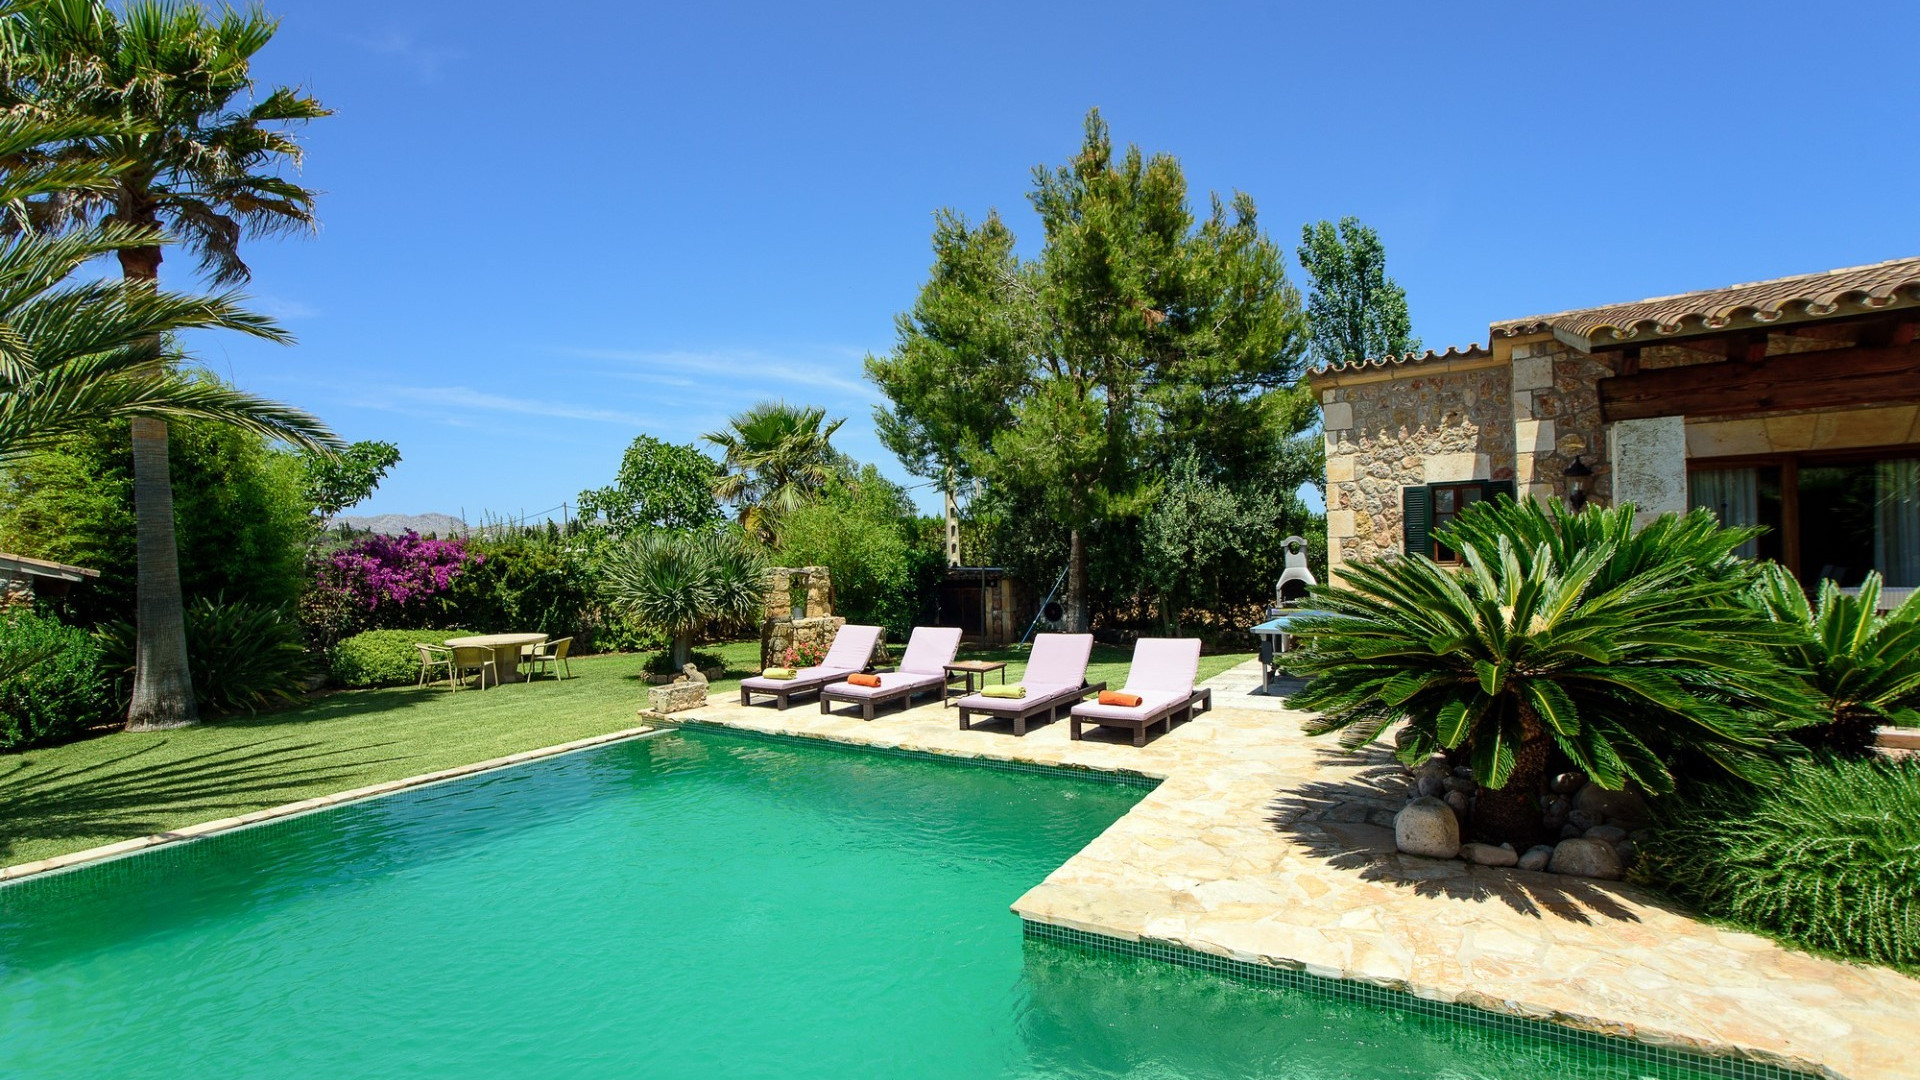 Modern 2 Bedroom Villa Pollenca| Large Private Pool & Table Tennis Table